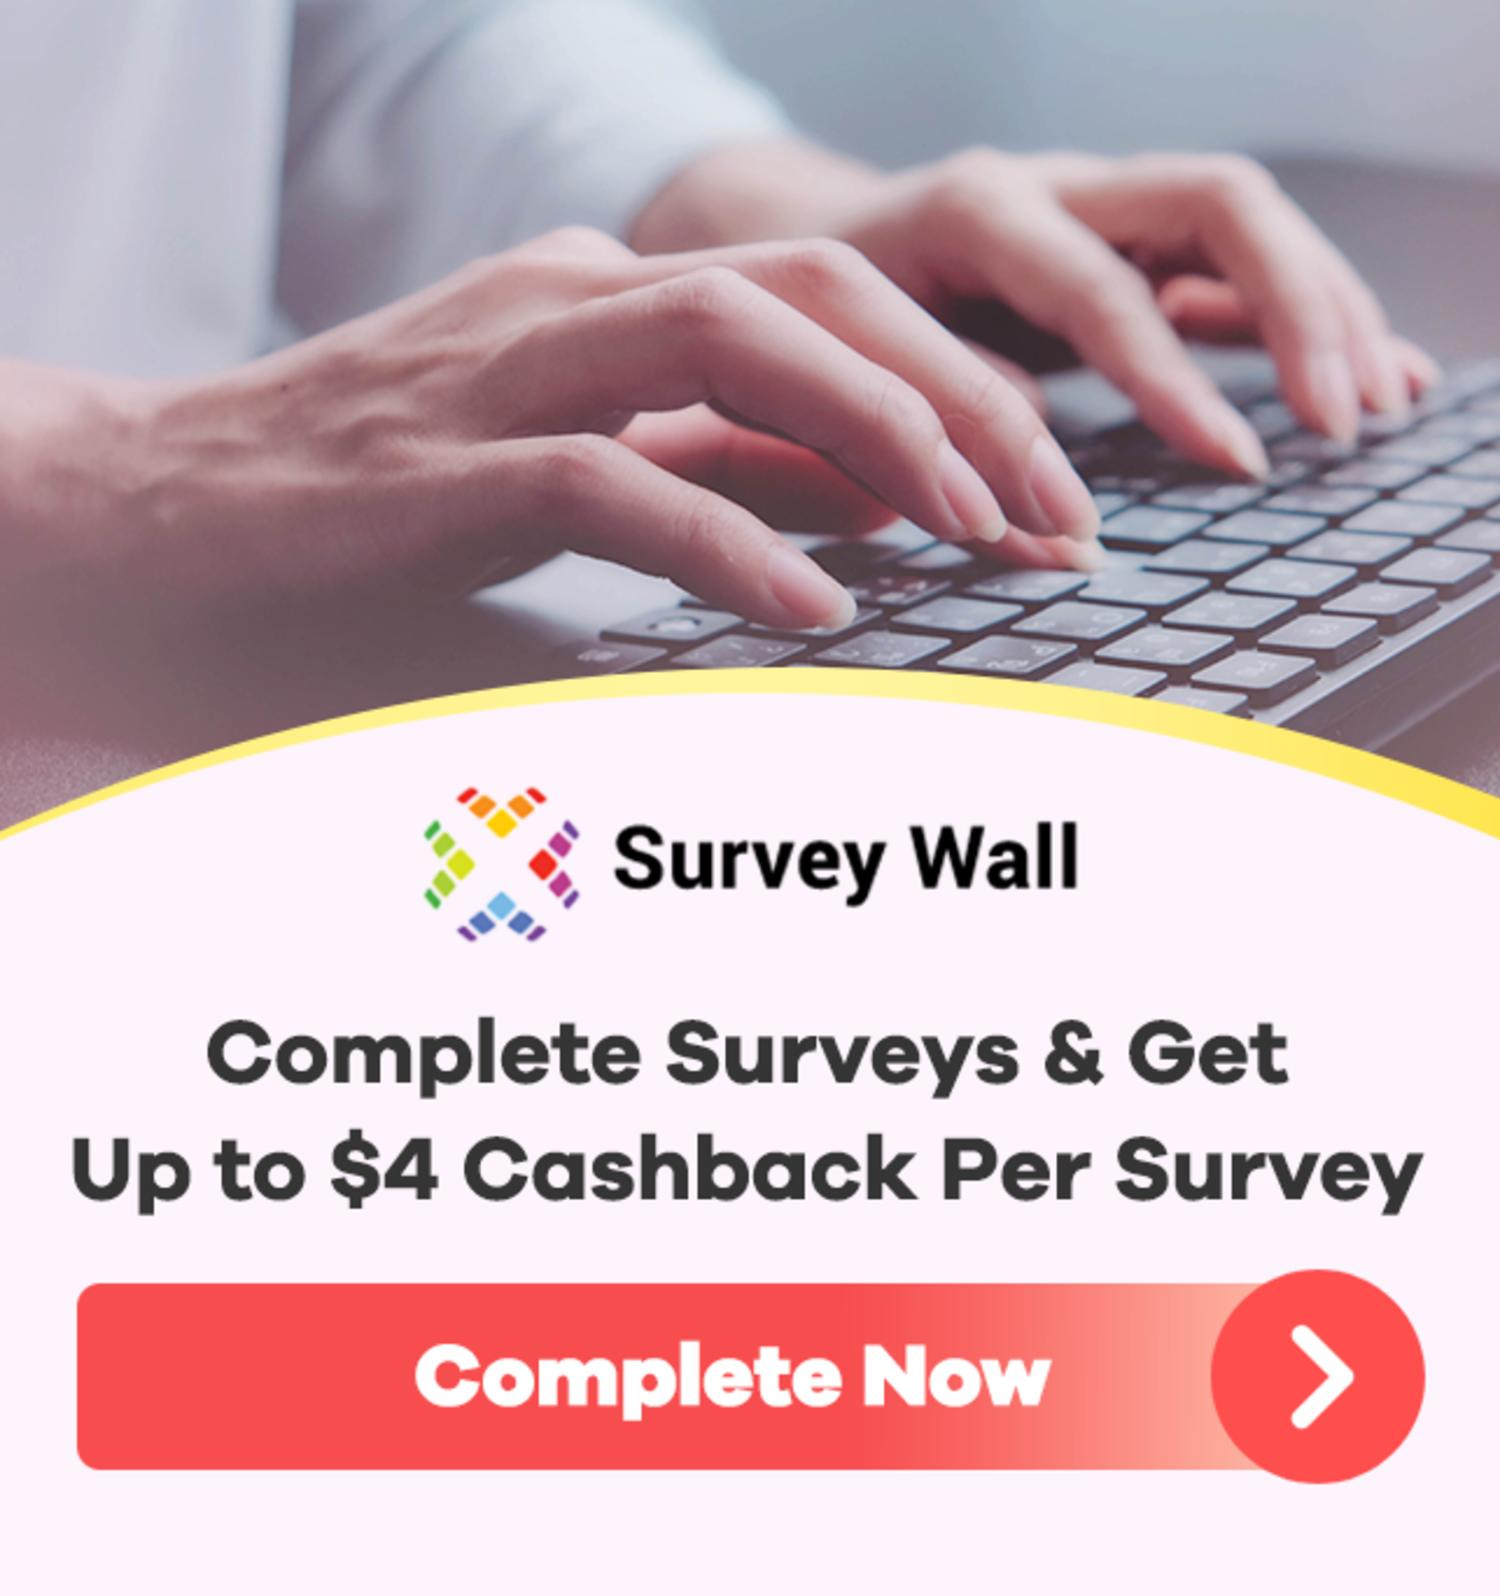 Survey Wall - Up to $4 Cashback